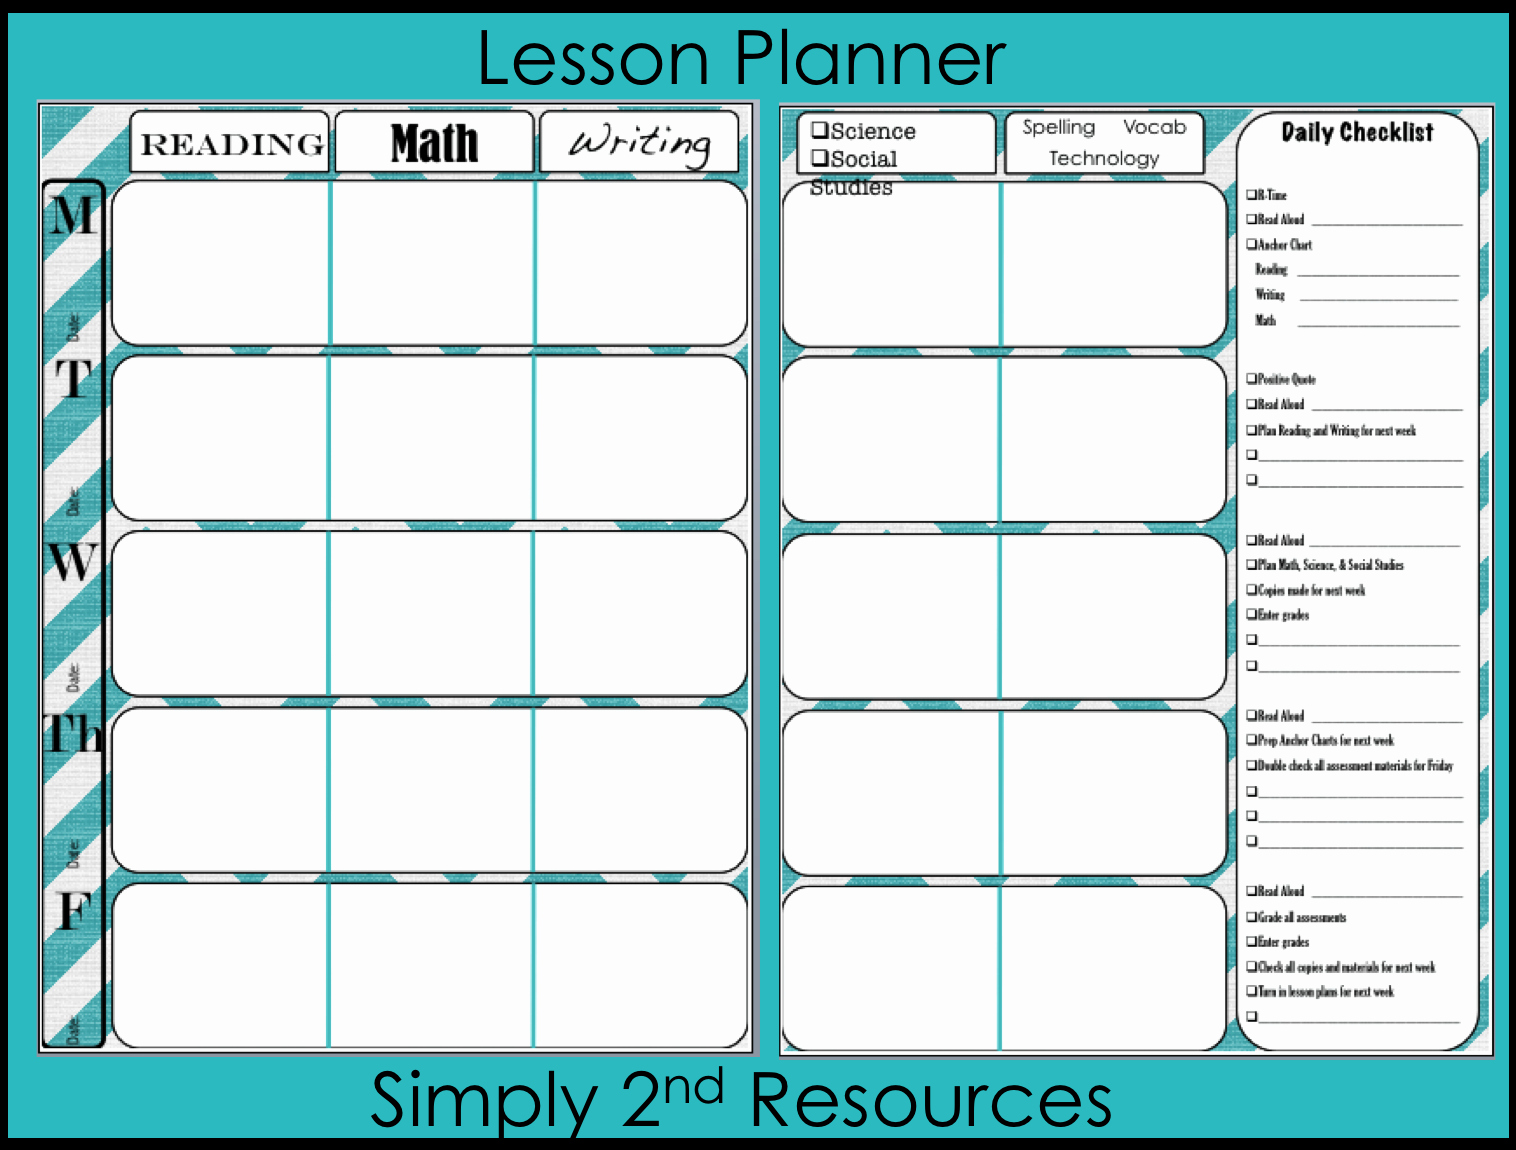 Free Daily Lesson Plan Template Awesome Simply 2nd Resources Throwback Thursday Linky